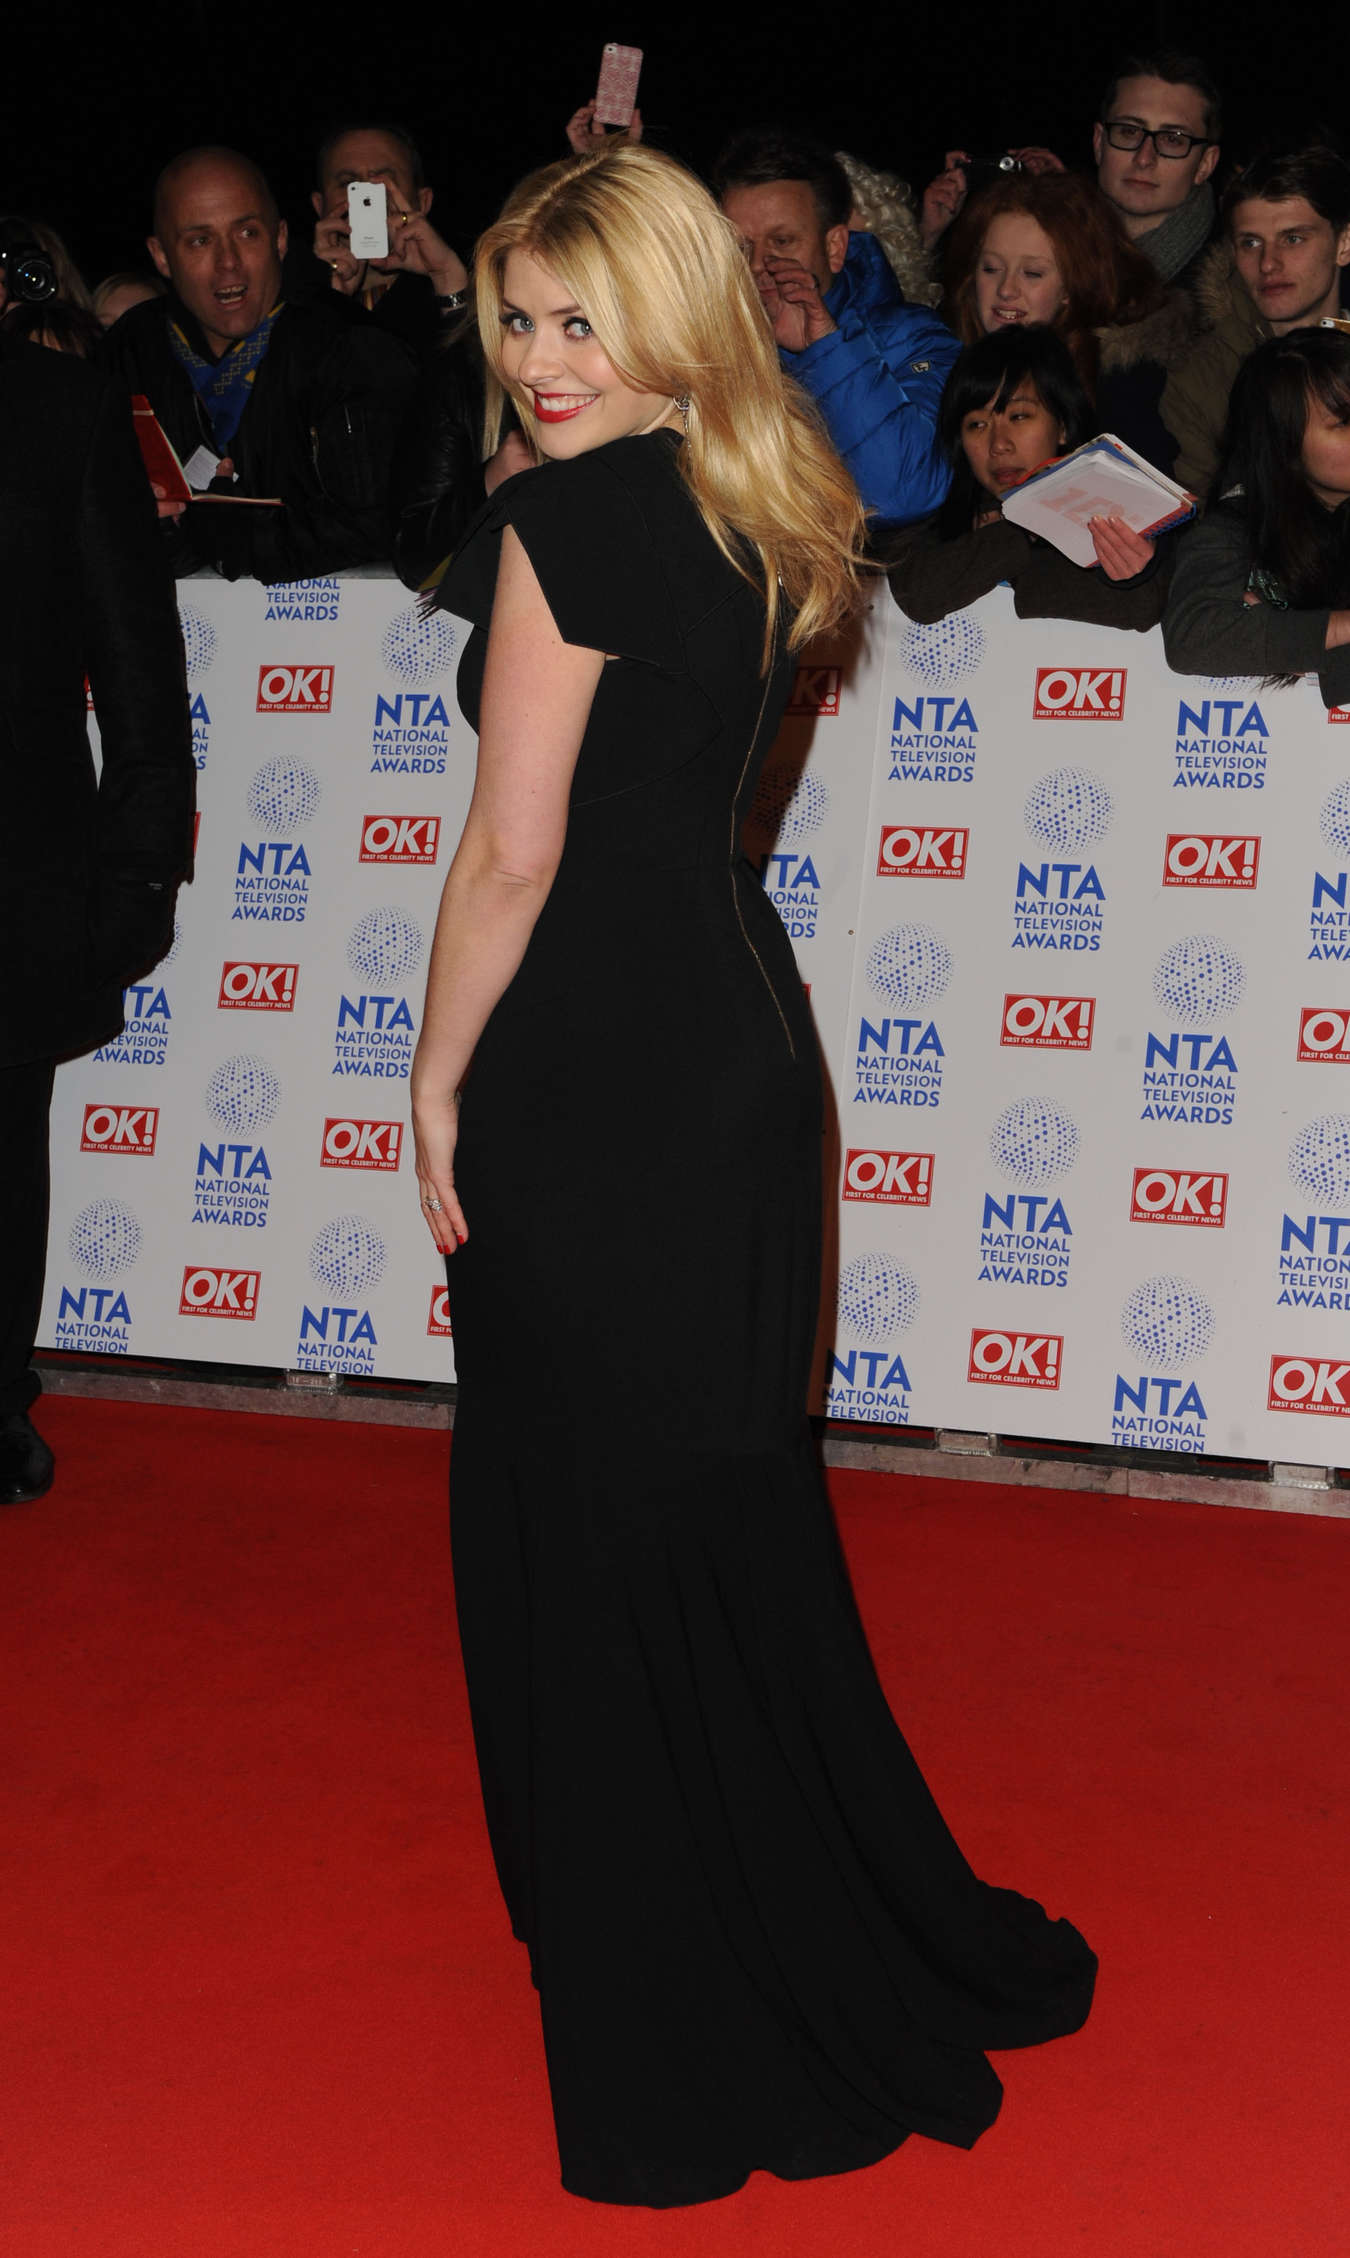 Black Fruday Holly Willoughby In Black Dress -01 - Gotceleb